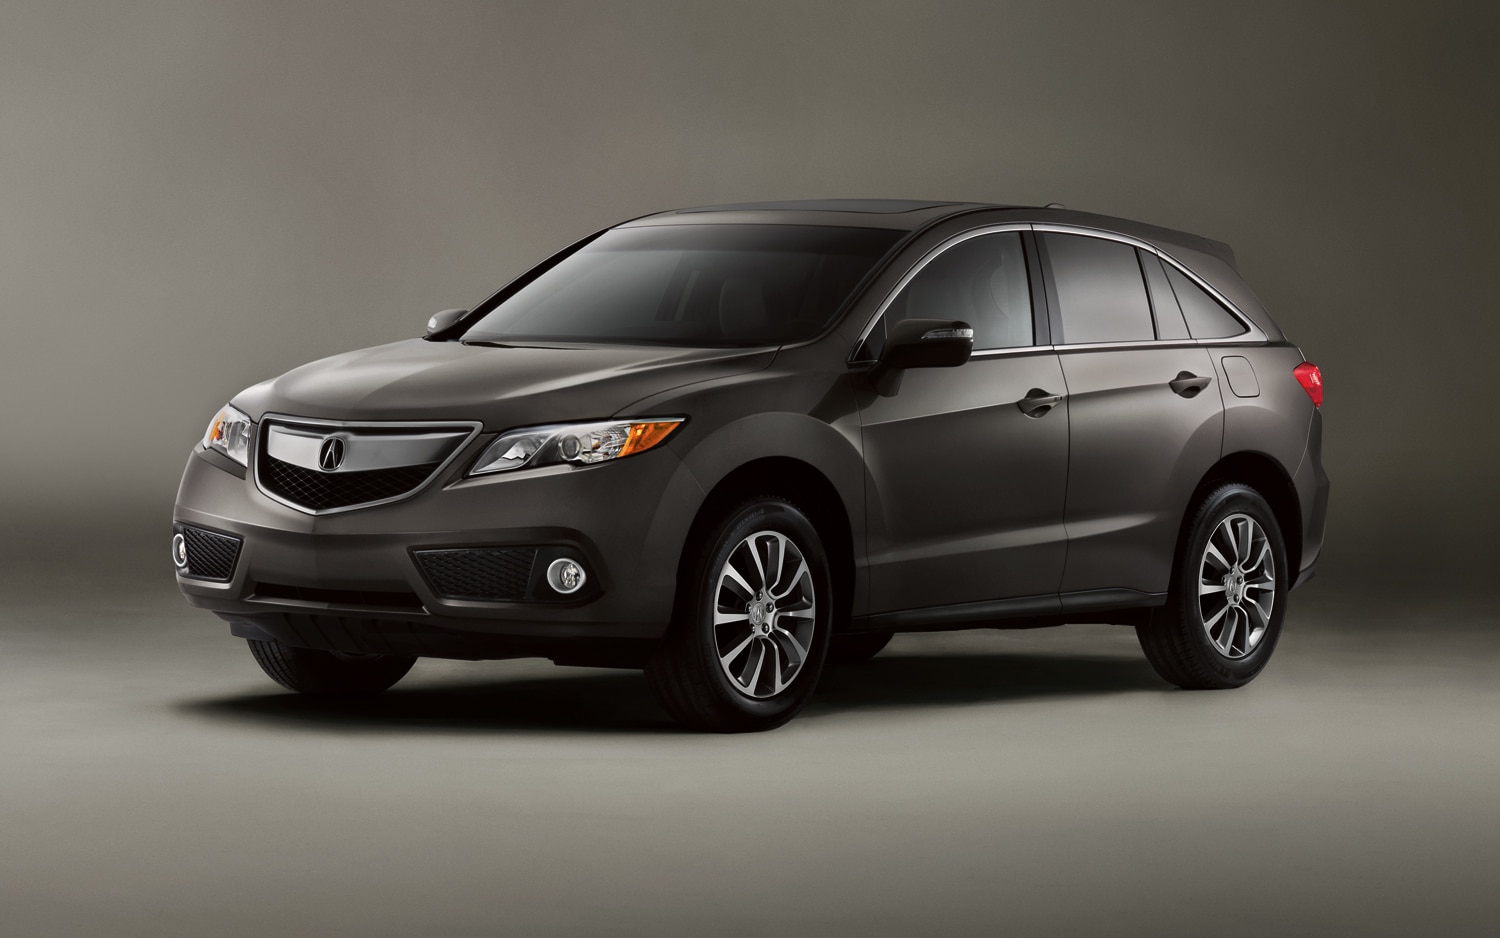 Production Version Of 2013 Acura Rdx To Debut At Chicago Auto Show Photo Image Gallery